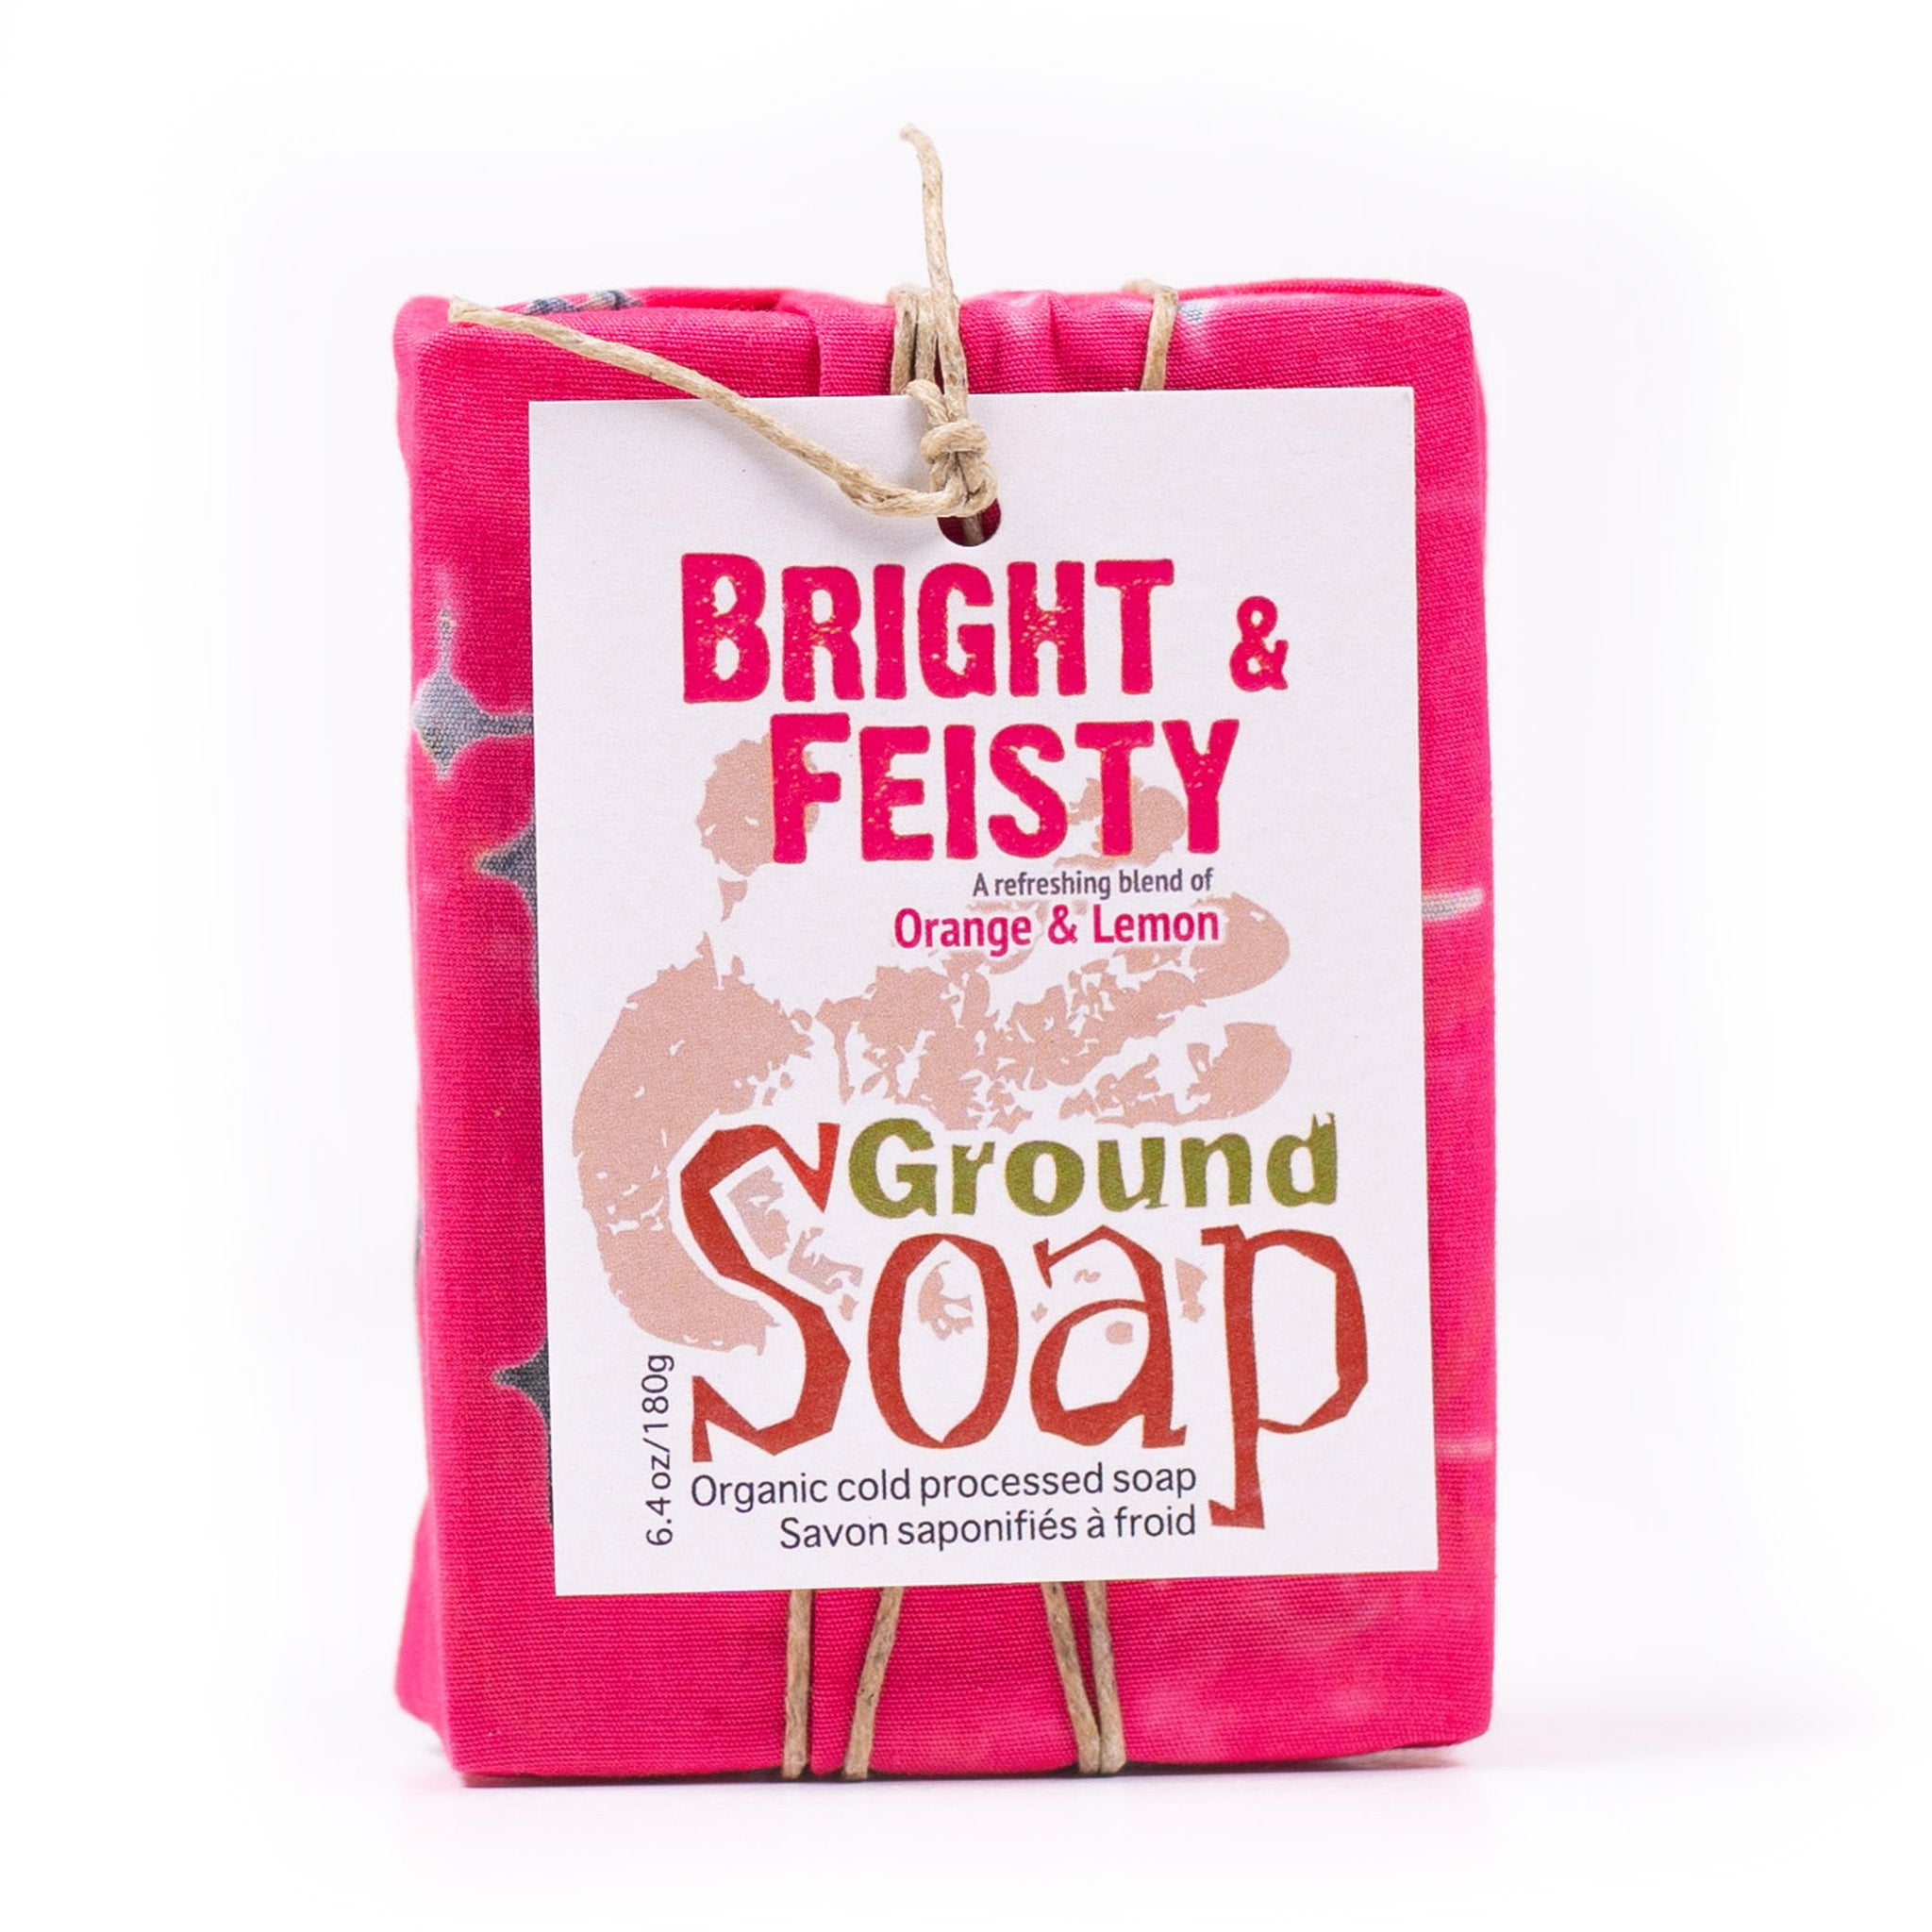 Bright & Feisty citrus essential oil blend organic bar soap from ground Soap.